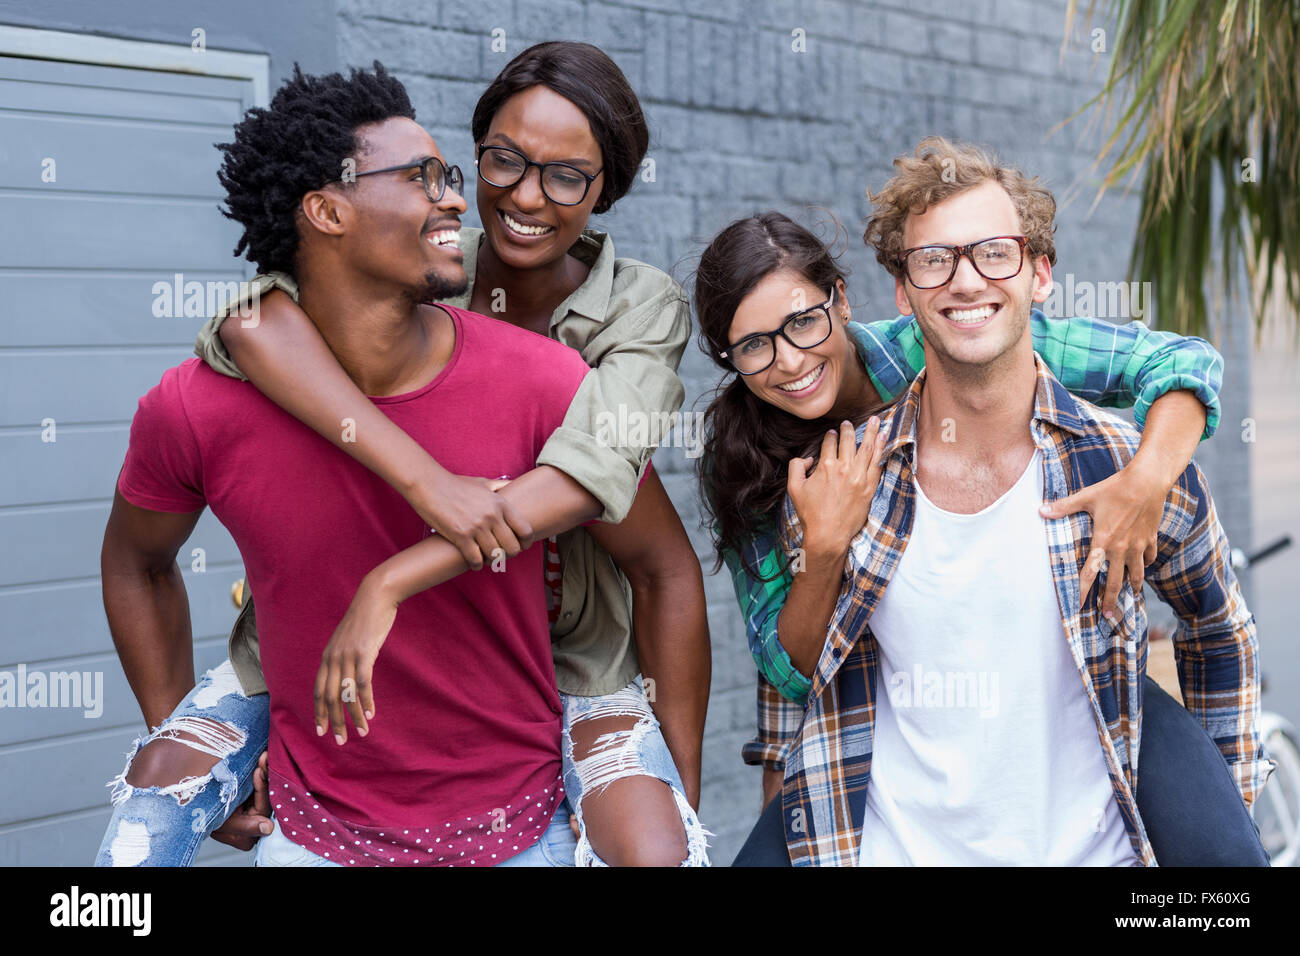 Young men giving piggyback to women - Stock Image